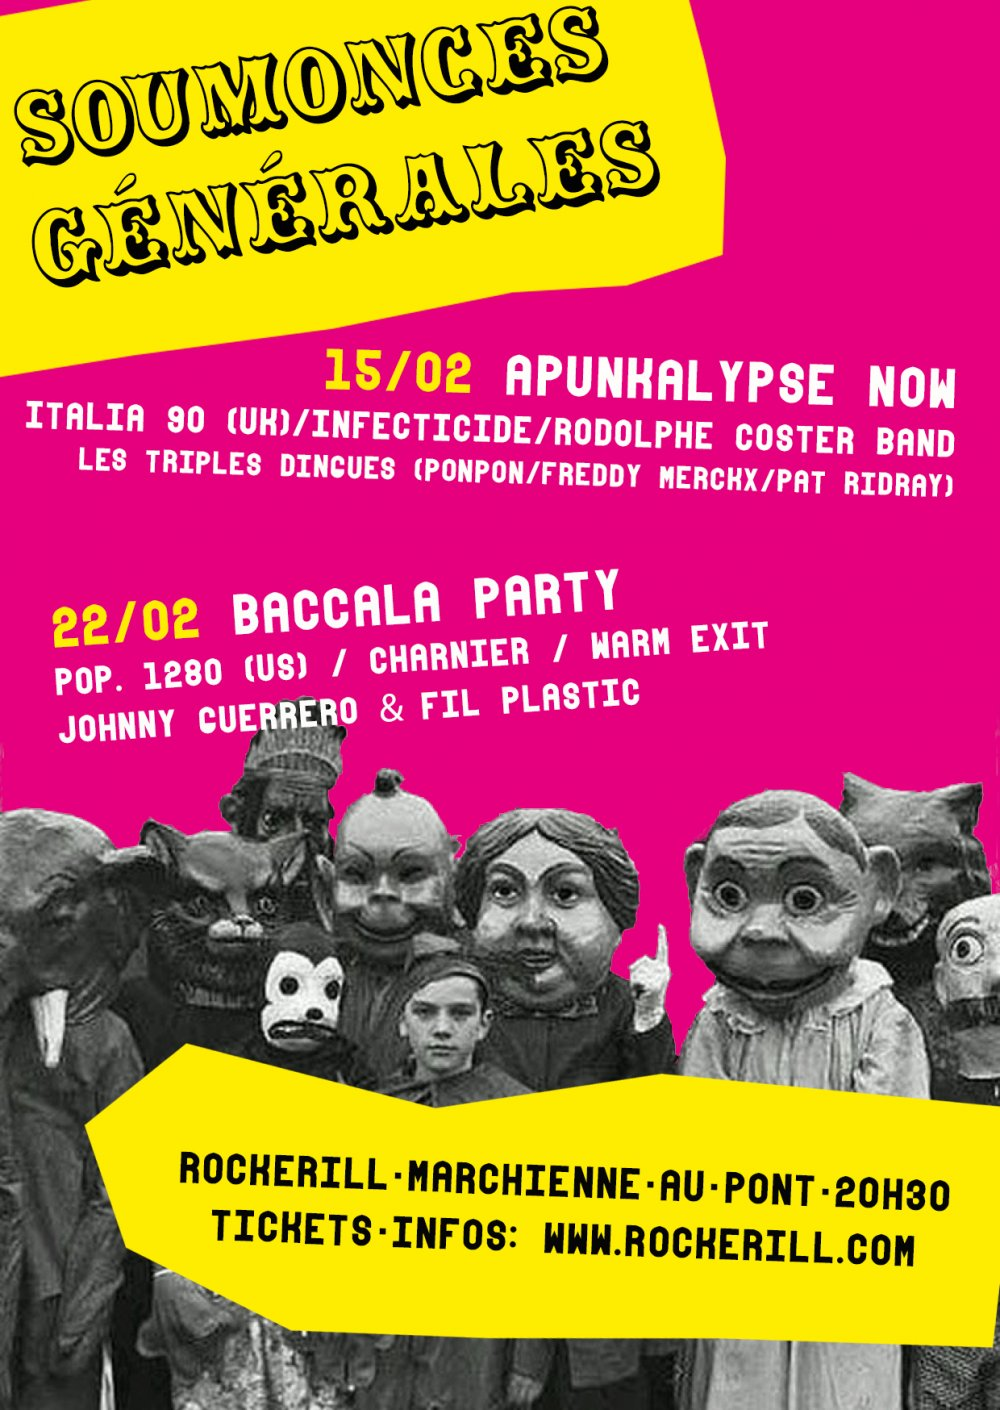 BACCALÀ PARTY WITH POP.1280 !